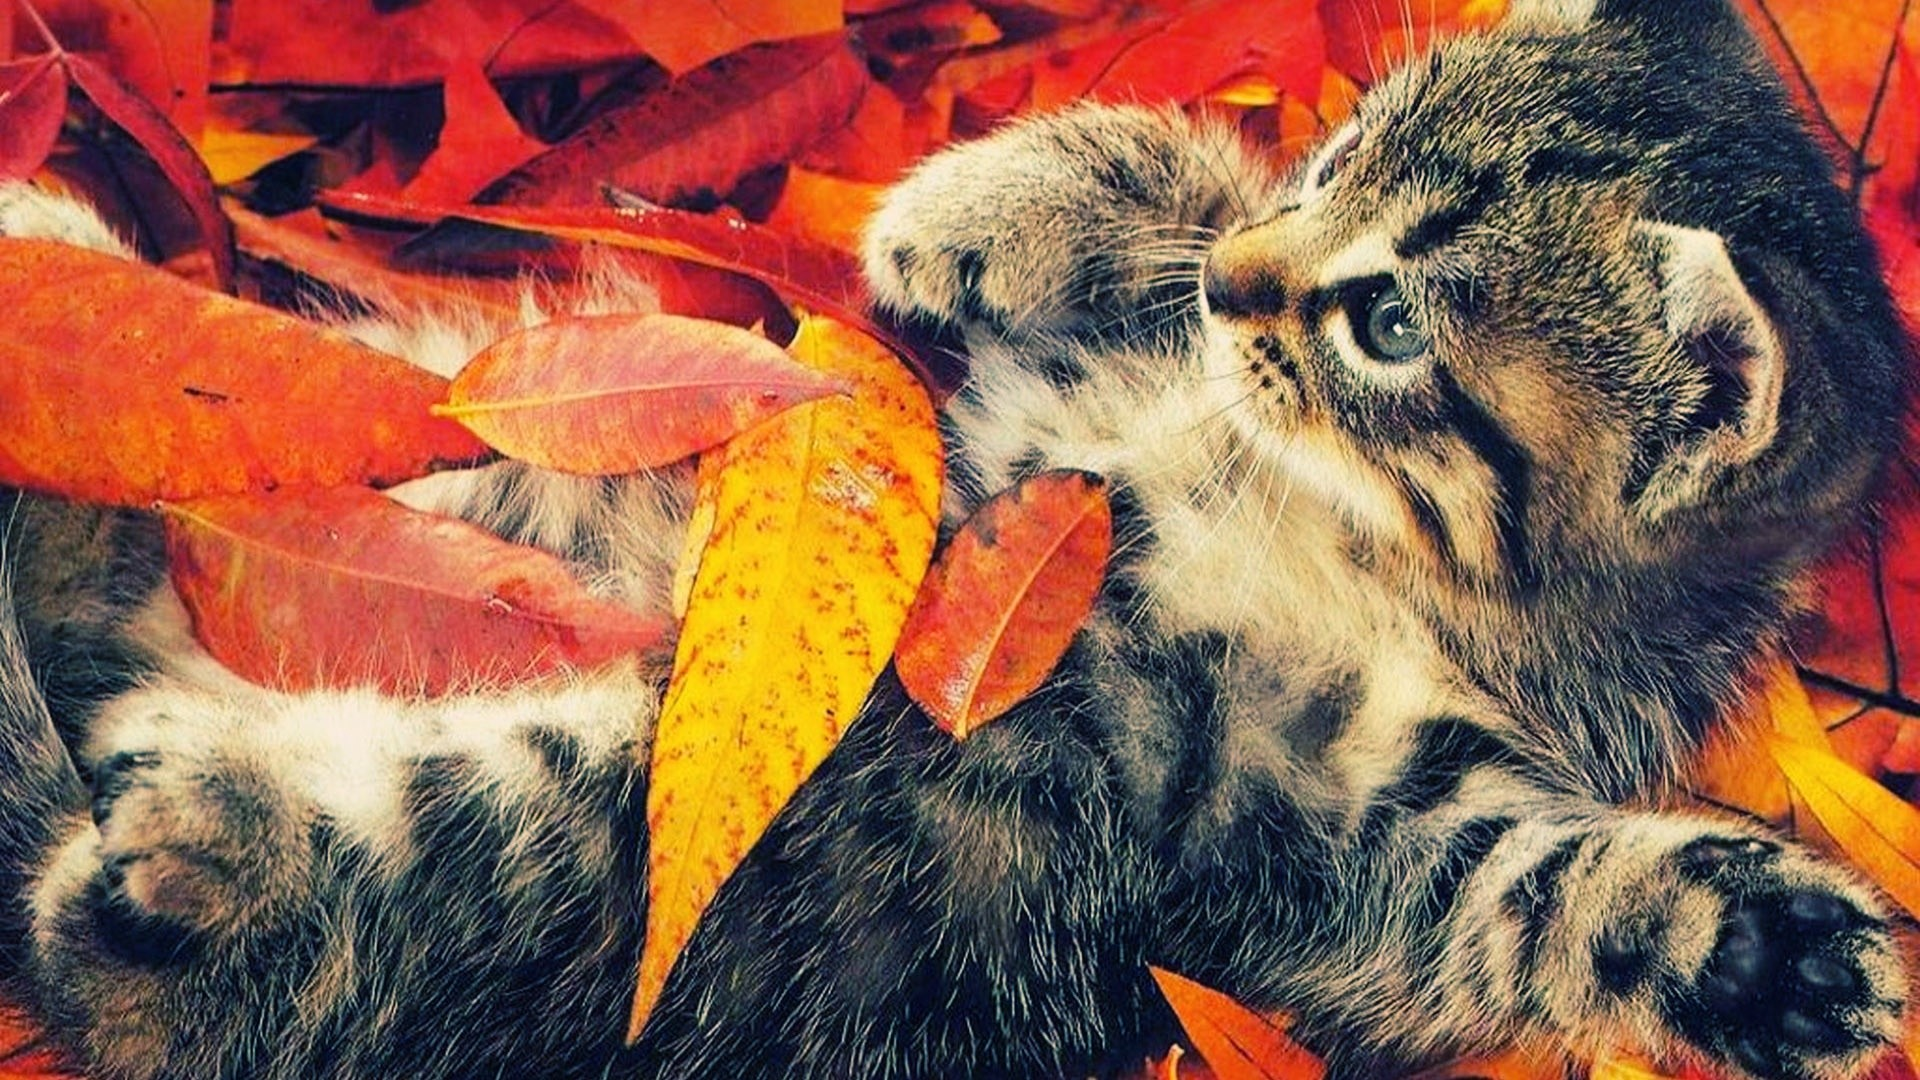 Fall Leaves Ipad Wallpaper Fall Wallpaper 183 ① Download Free Full Hd Backgrounds For